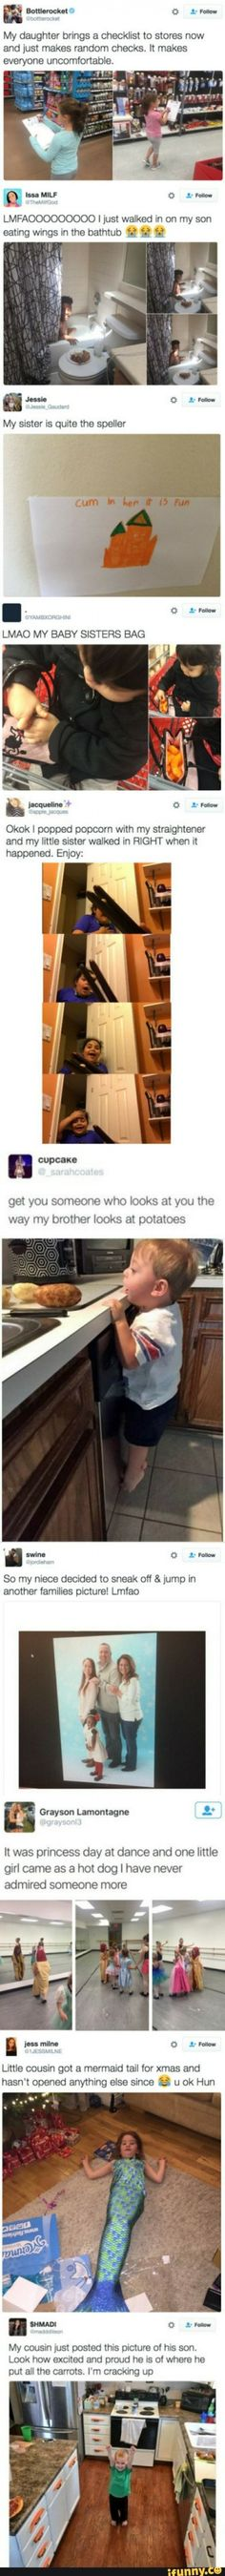 10 funny memes of the day lol funny, funny memes, hilarious